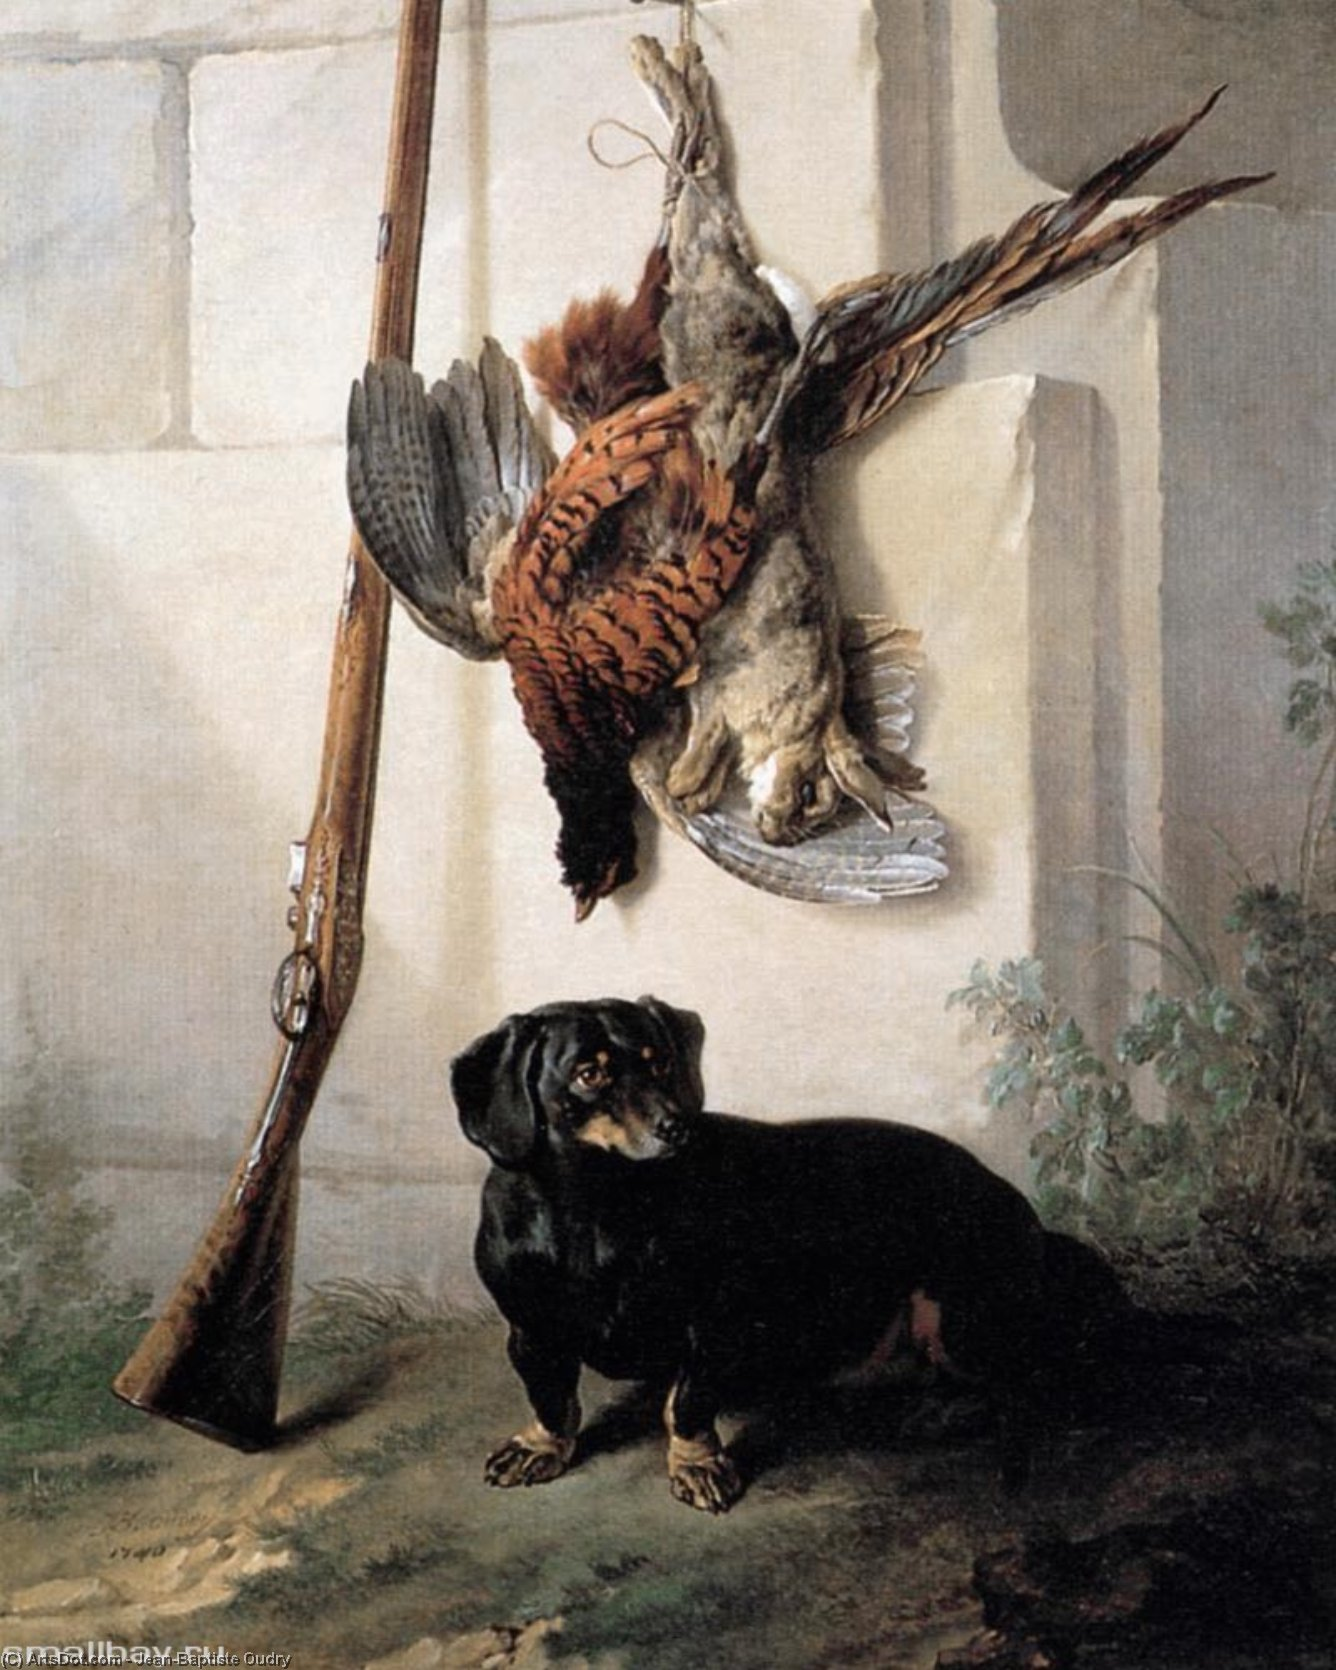 Hound with Gun and Dead Game, Oil On Canvas by Jean-Baptiste Oudry (1686-1755, France)